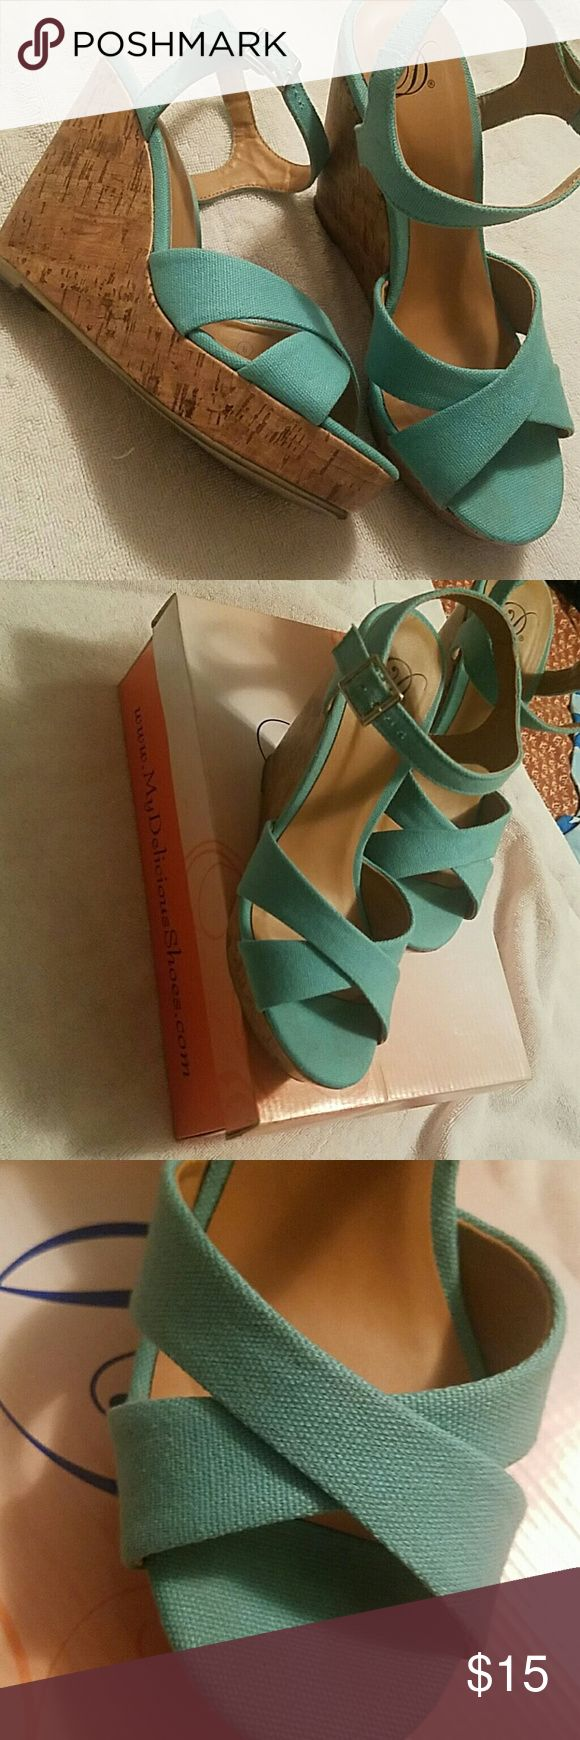 Mid teal wedges Cute. Only worn once teal wedges. Would look great  with summer dresses or jeans. Still have Original box they came in. Shoes Wedges